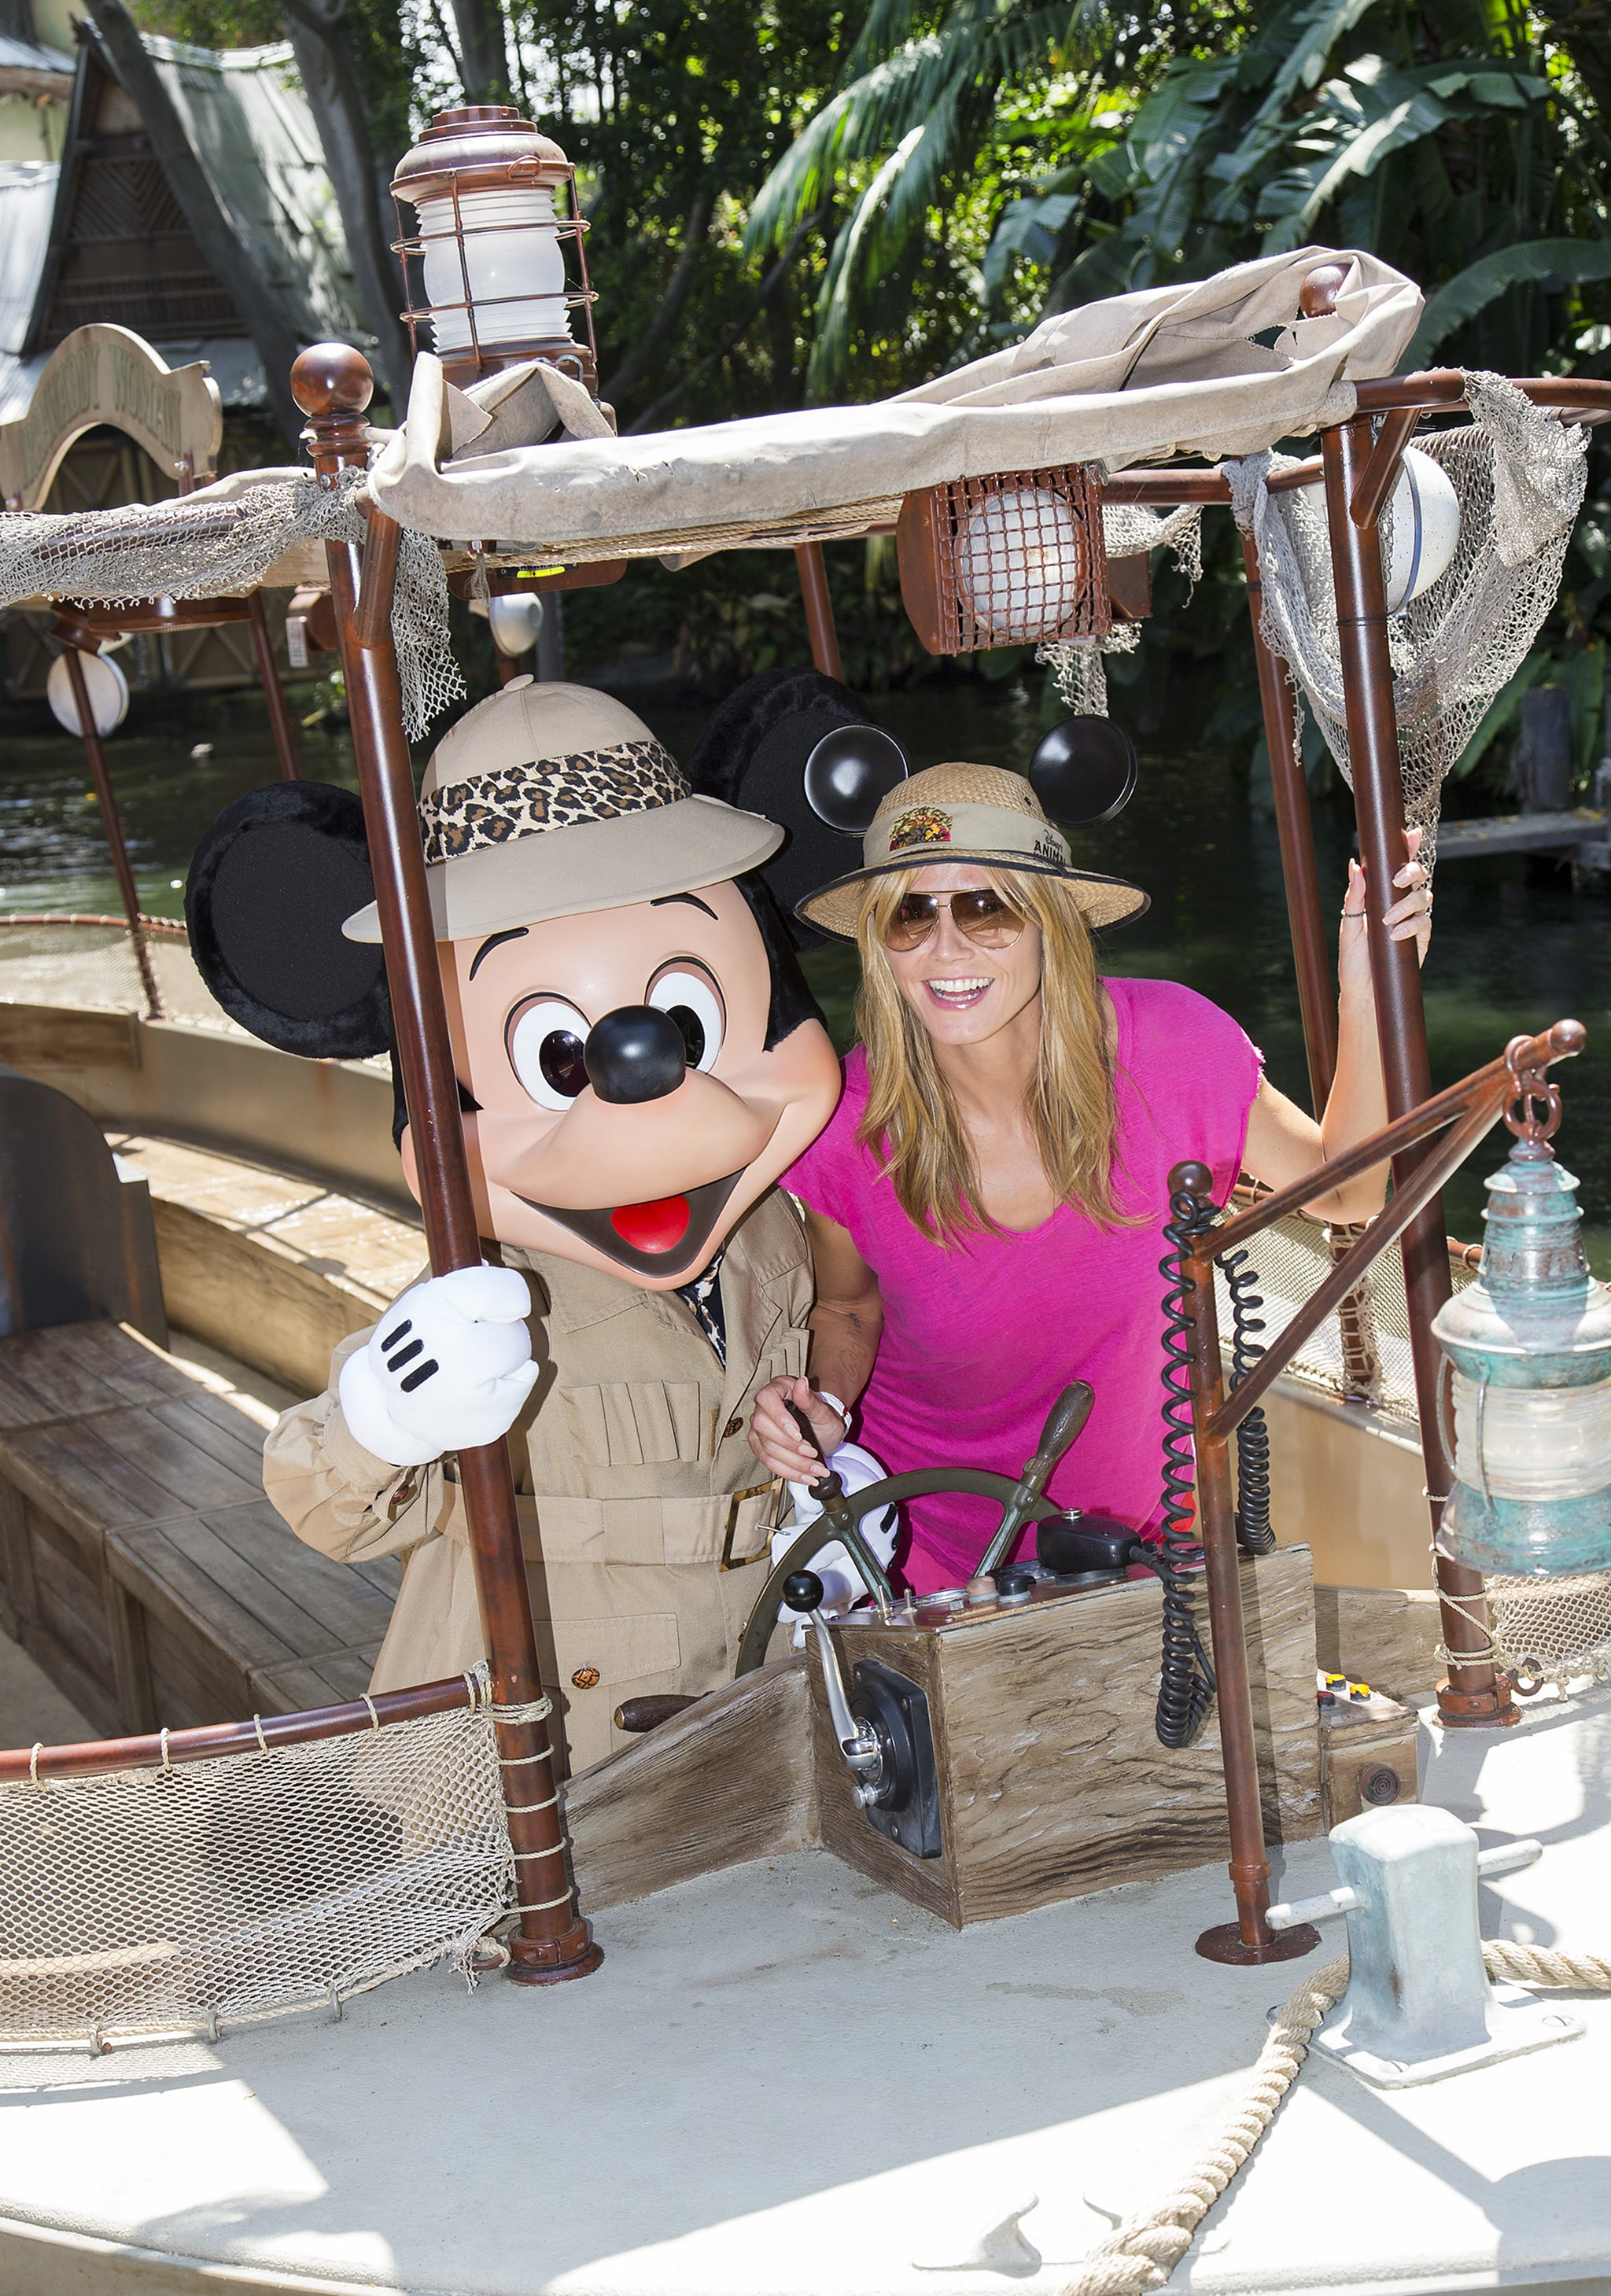 Heidi Klum took a jungle cruise with Mickey Mouse in May 2014.